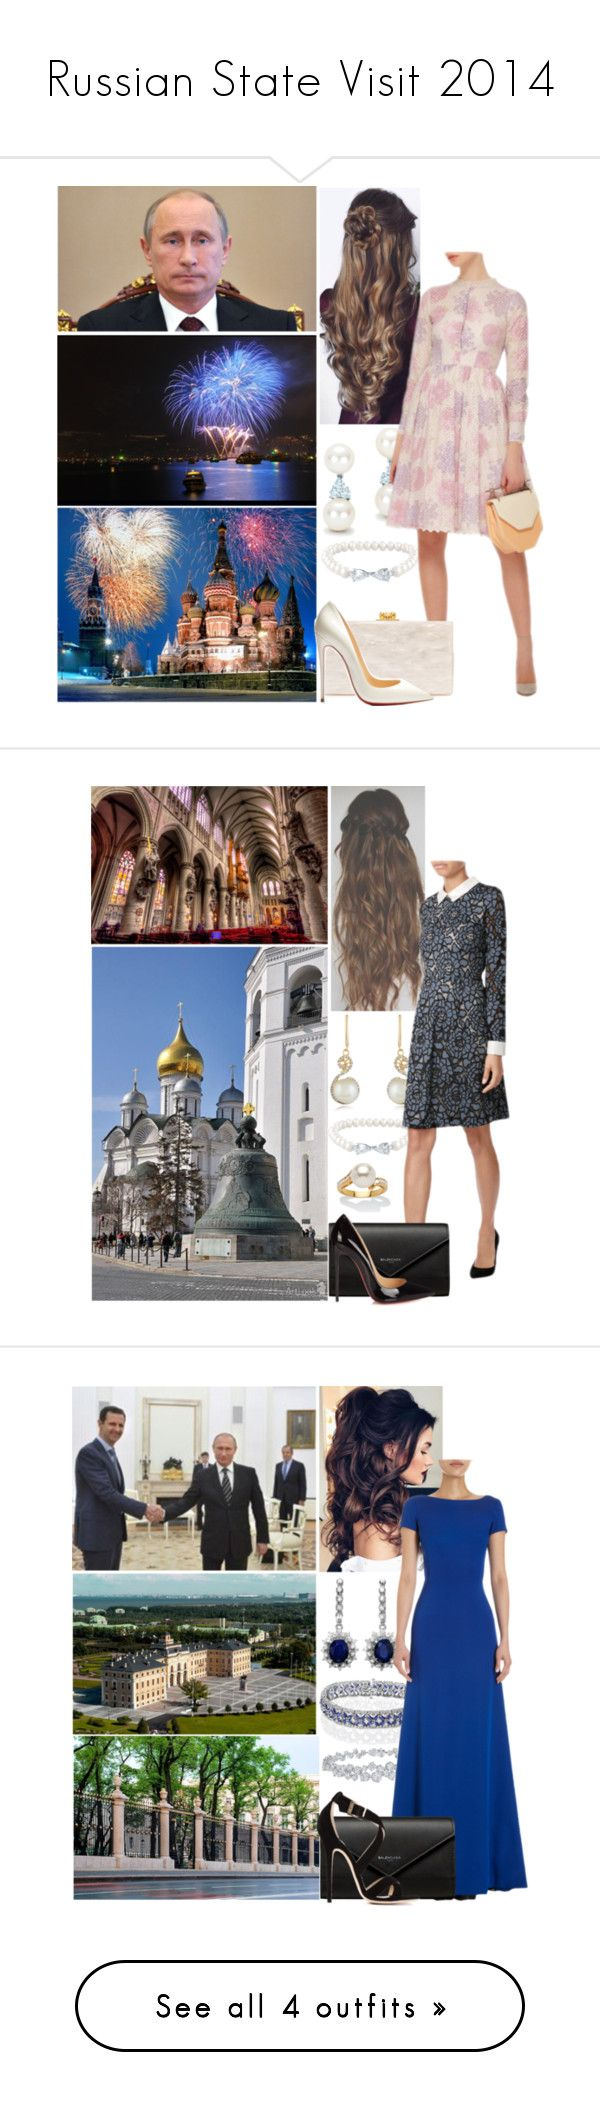 """""""Russian State Visit 2014"""" by alicewindsor ❤ liked on Polyvore featuring Tiffany & Co., Belk & Co., LUISA BECCARIA, Edie Parker, Christian Louboutin, Effy Jewelry, Steffen Schraut, Balenciaga, Palm Beach Jewelry and Harry Winston"""